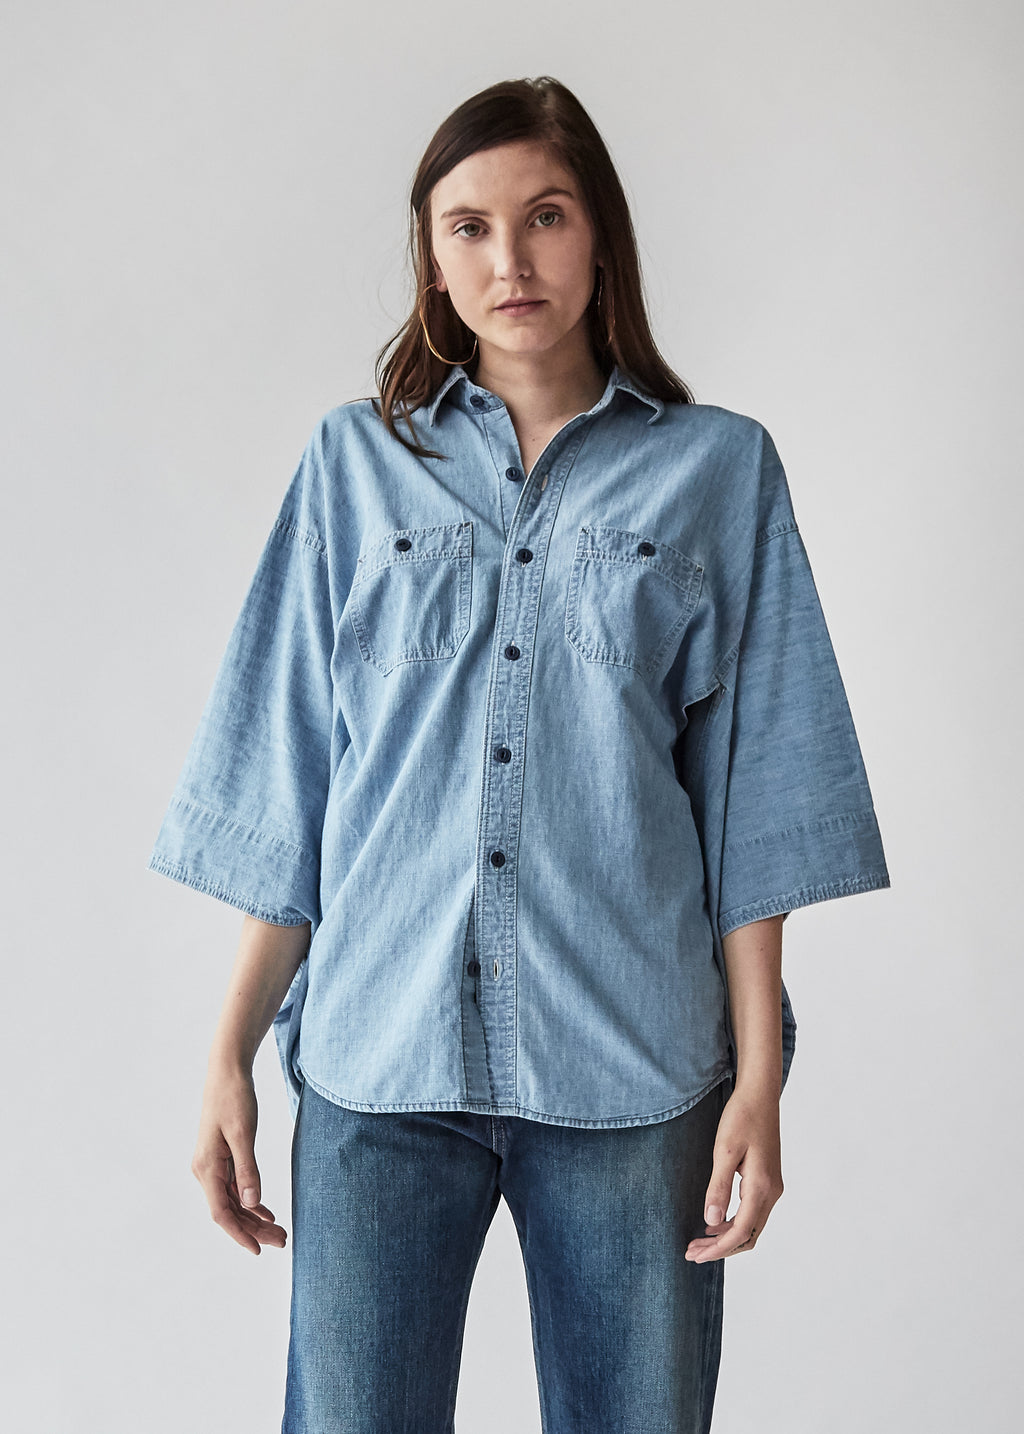 Kimono Shirt in Faded Indigo - SOLD OUT